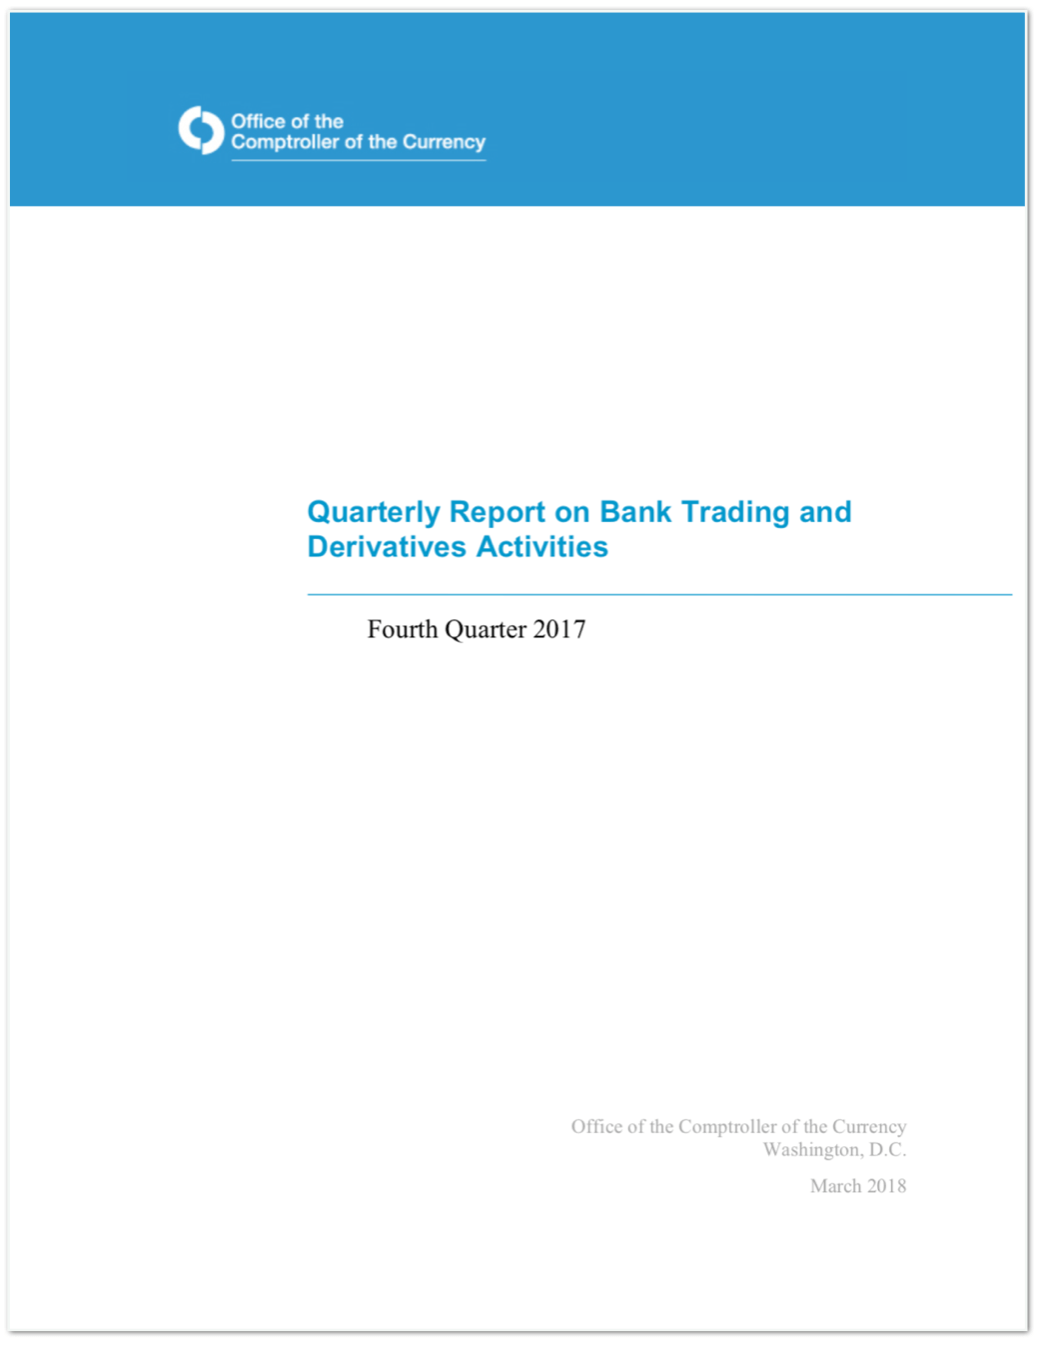 Quarterly Report on Bank Trading and Derivatives Activities